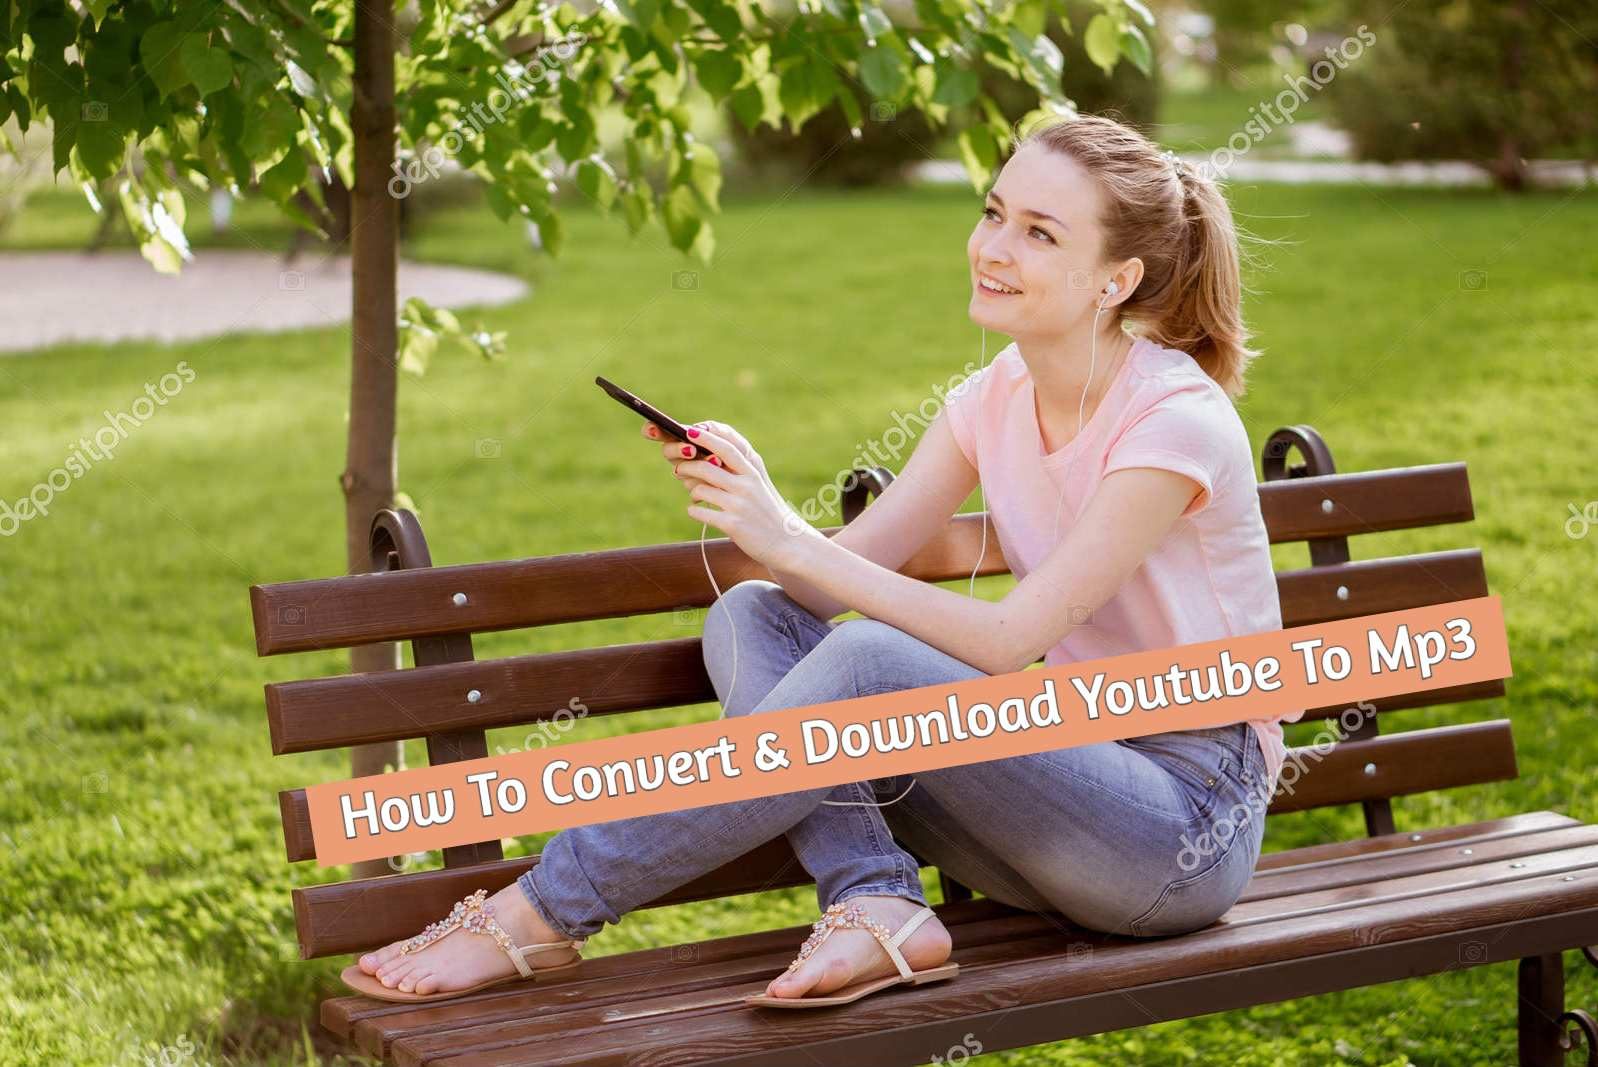 youtube to mp3 convert , youtube to mp4, youtubemp3 download, youtube to 320 kbps converter downloader, youtube video downloader